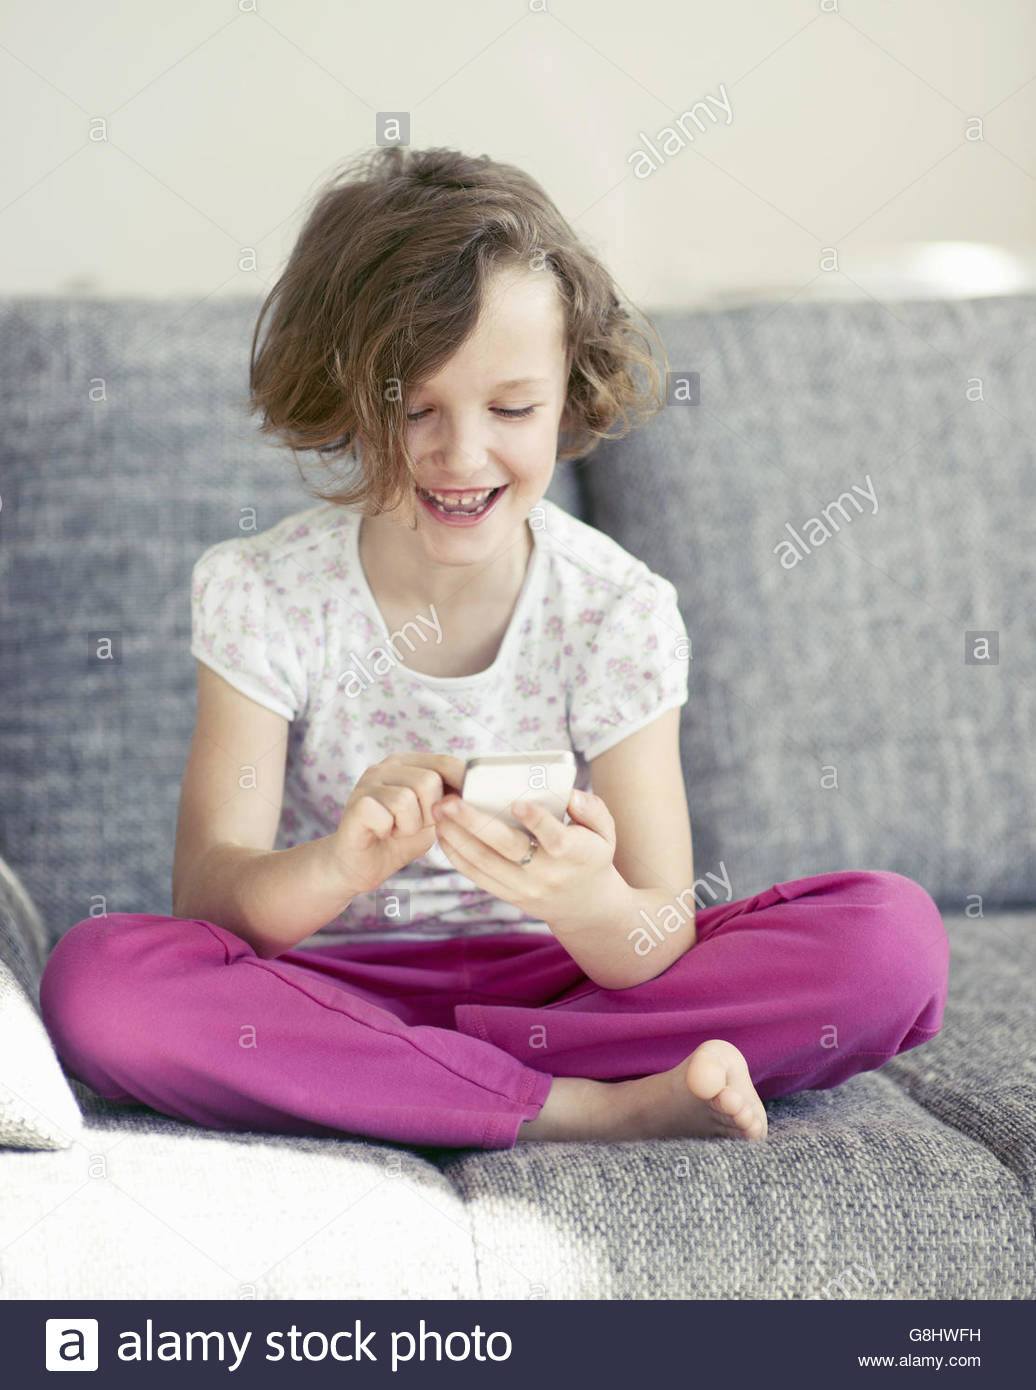 Young Girl using cellphone sur canapé Photo Stock